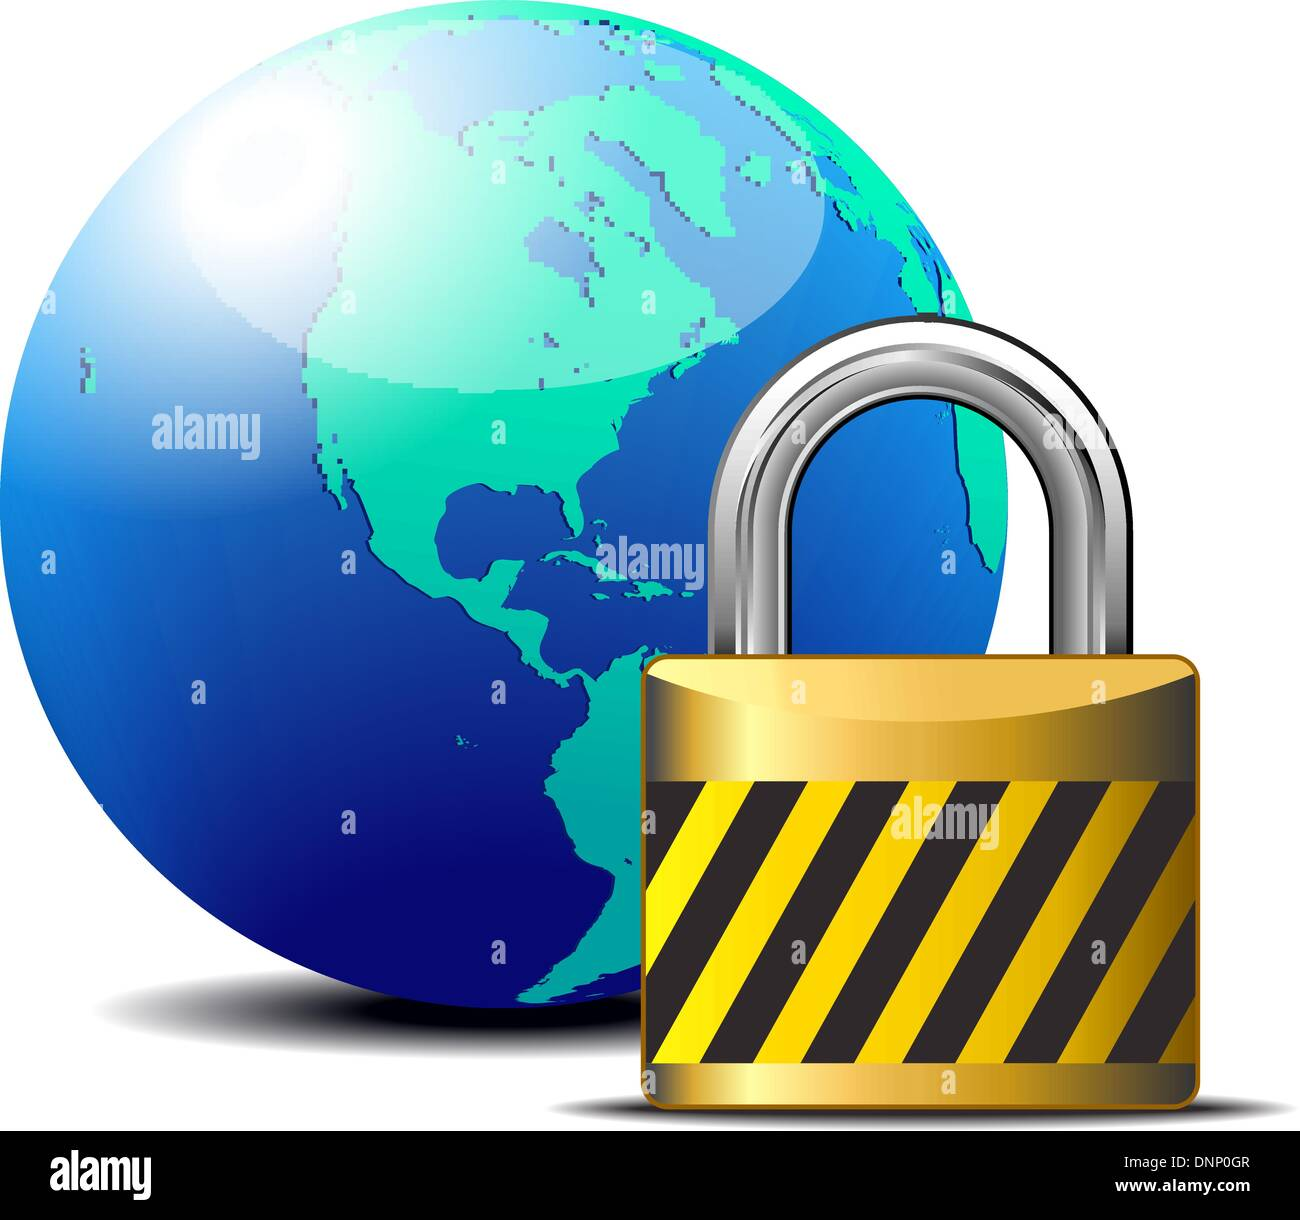 Secure internet connection with global world - Firewall, Account Unlock, Safe, Lock - Stock Vector